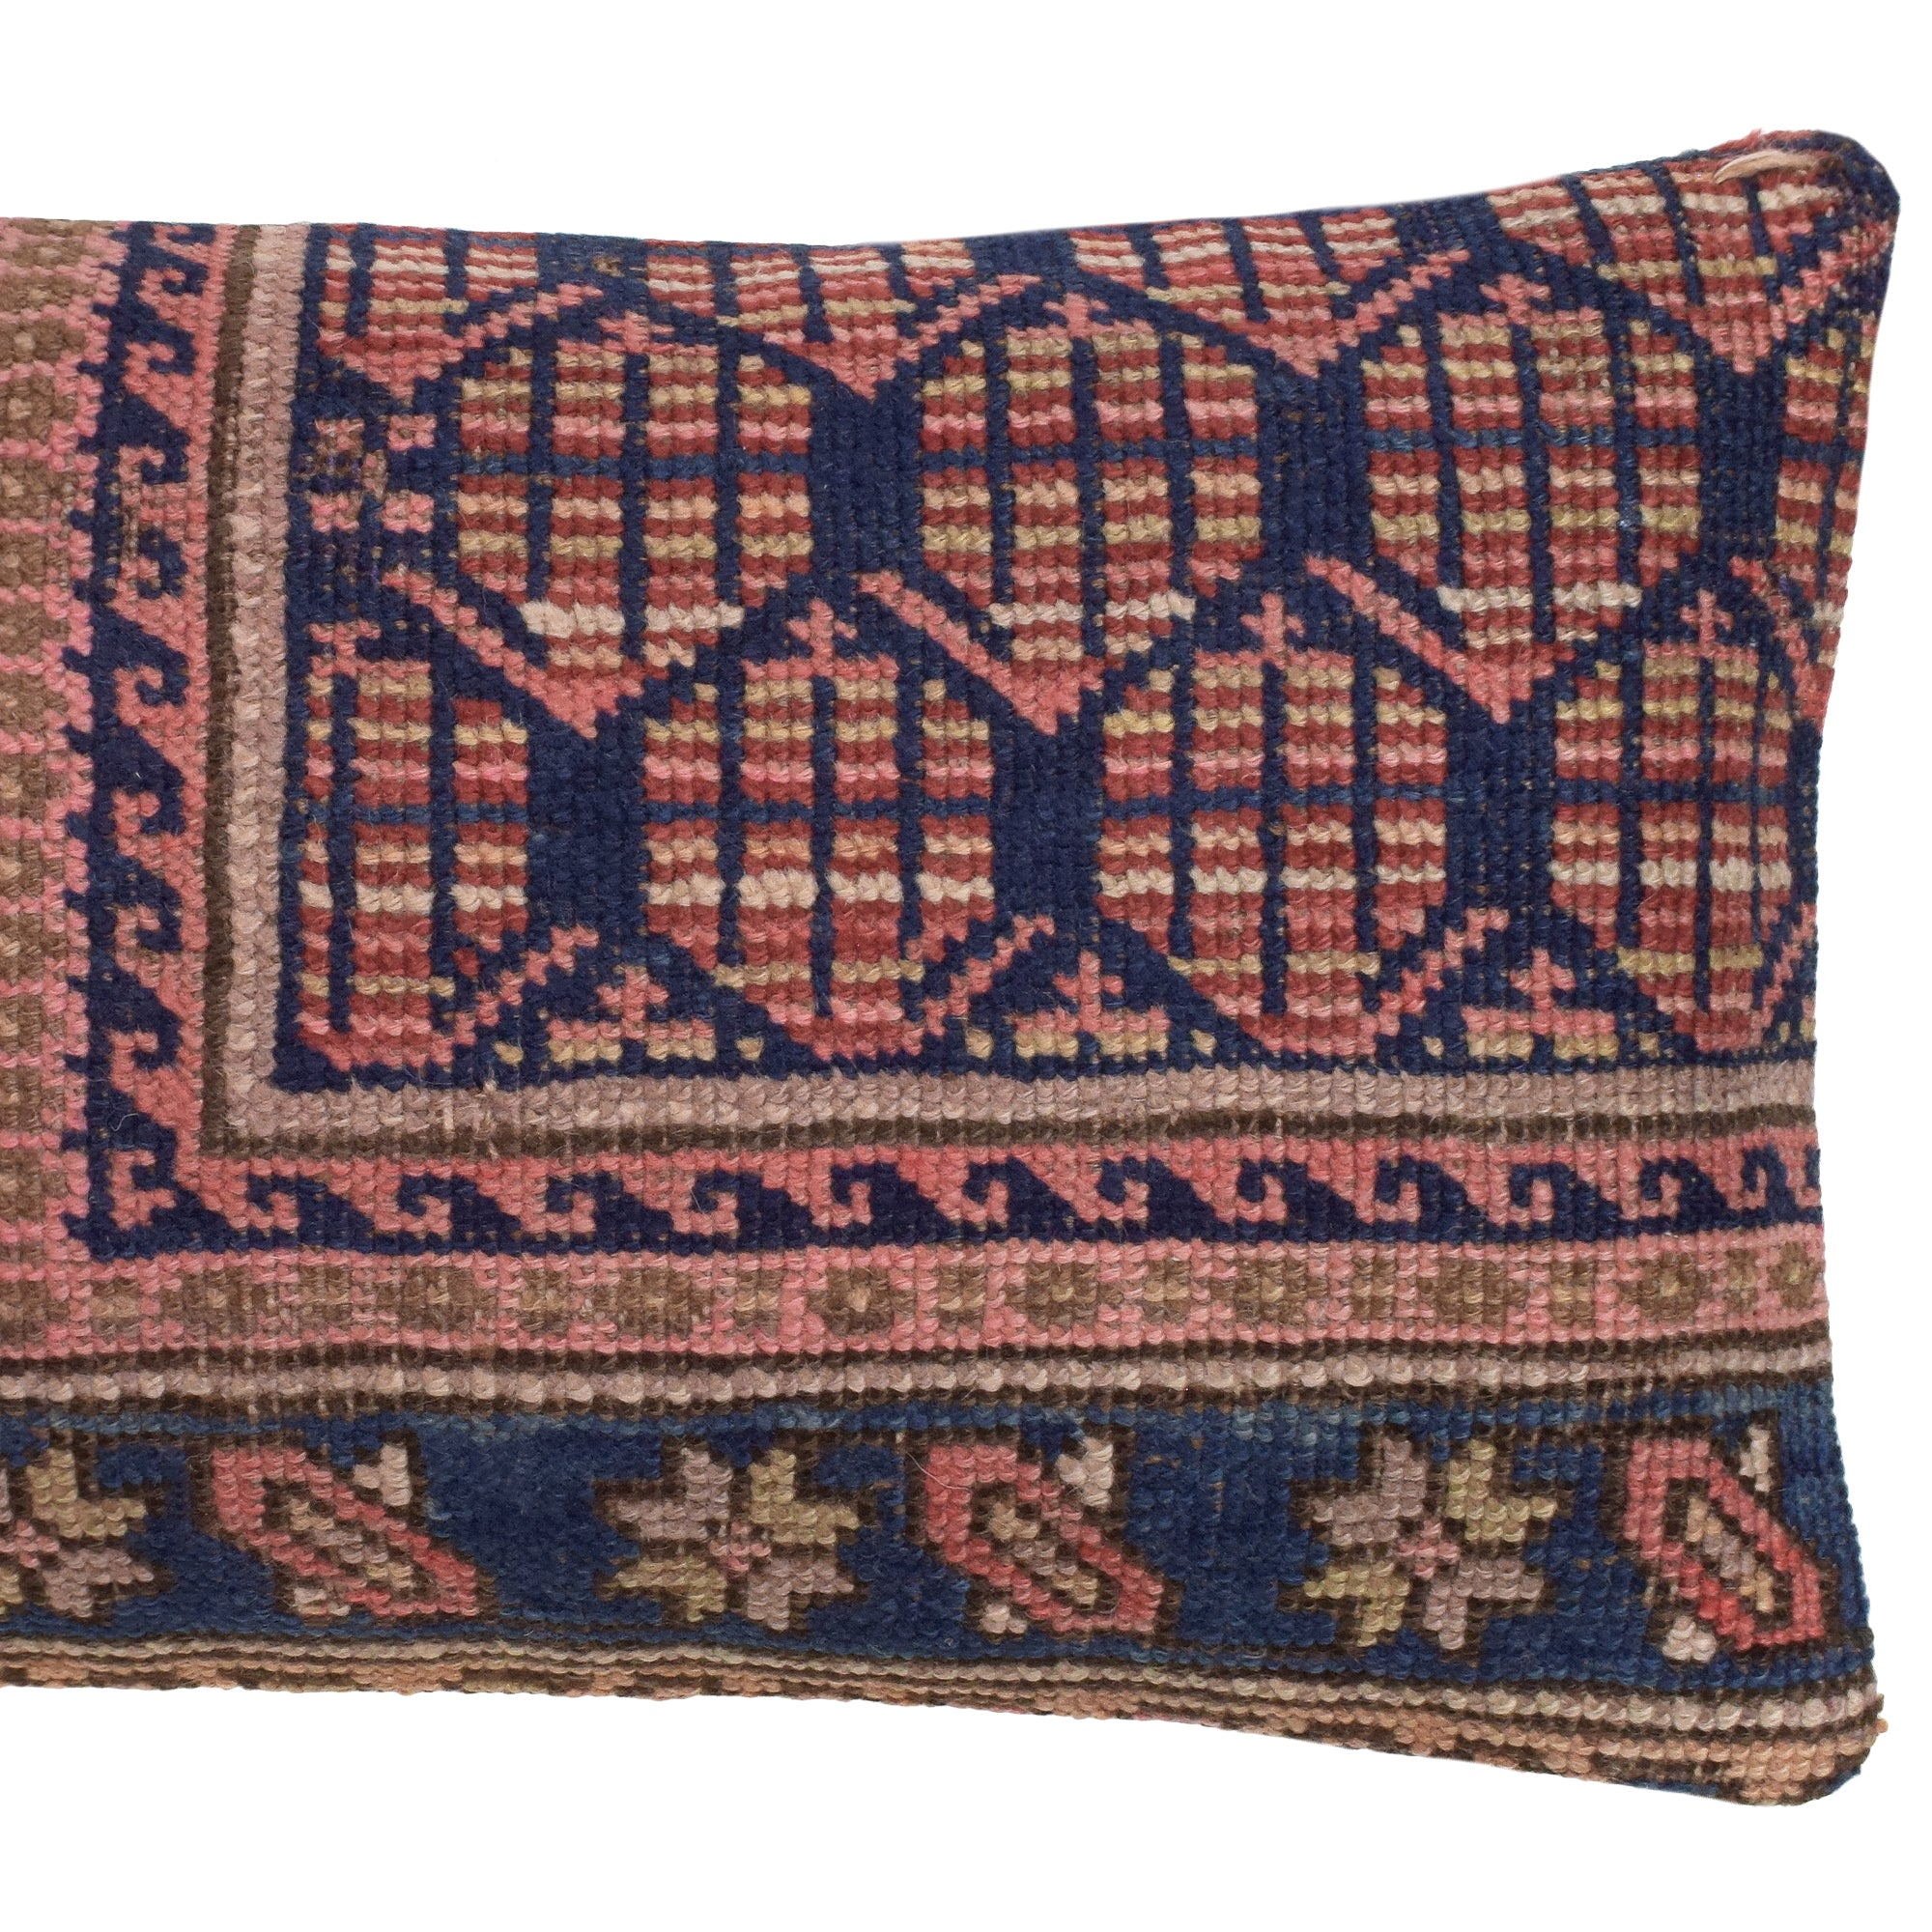 yonder-living-vintage-kilim-cushion-pink-red-navy-blue